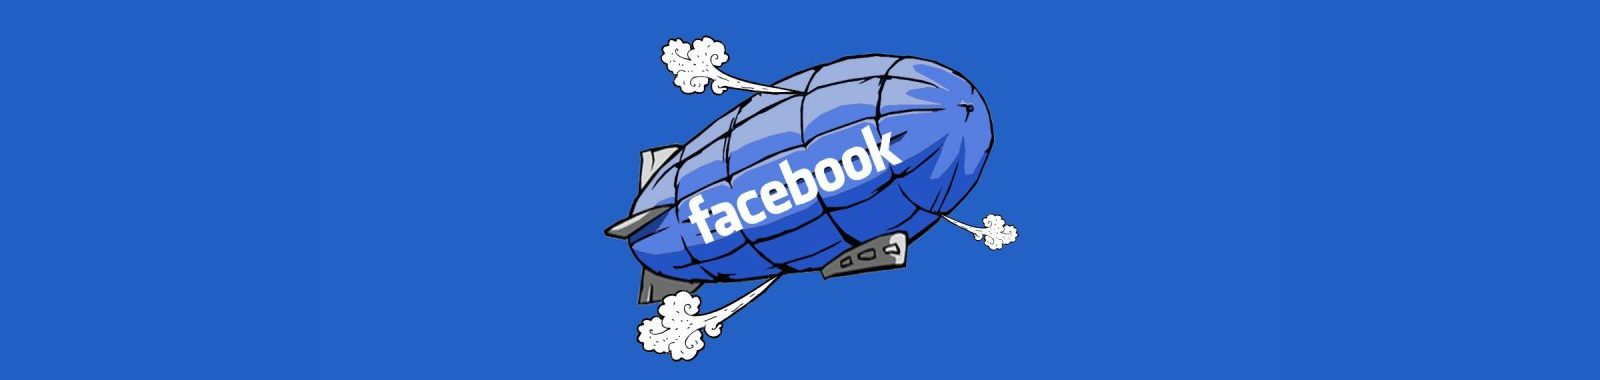 fb-blimp-1600-440